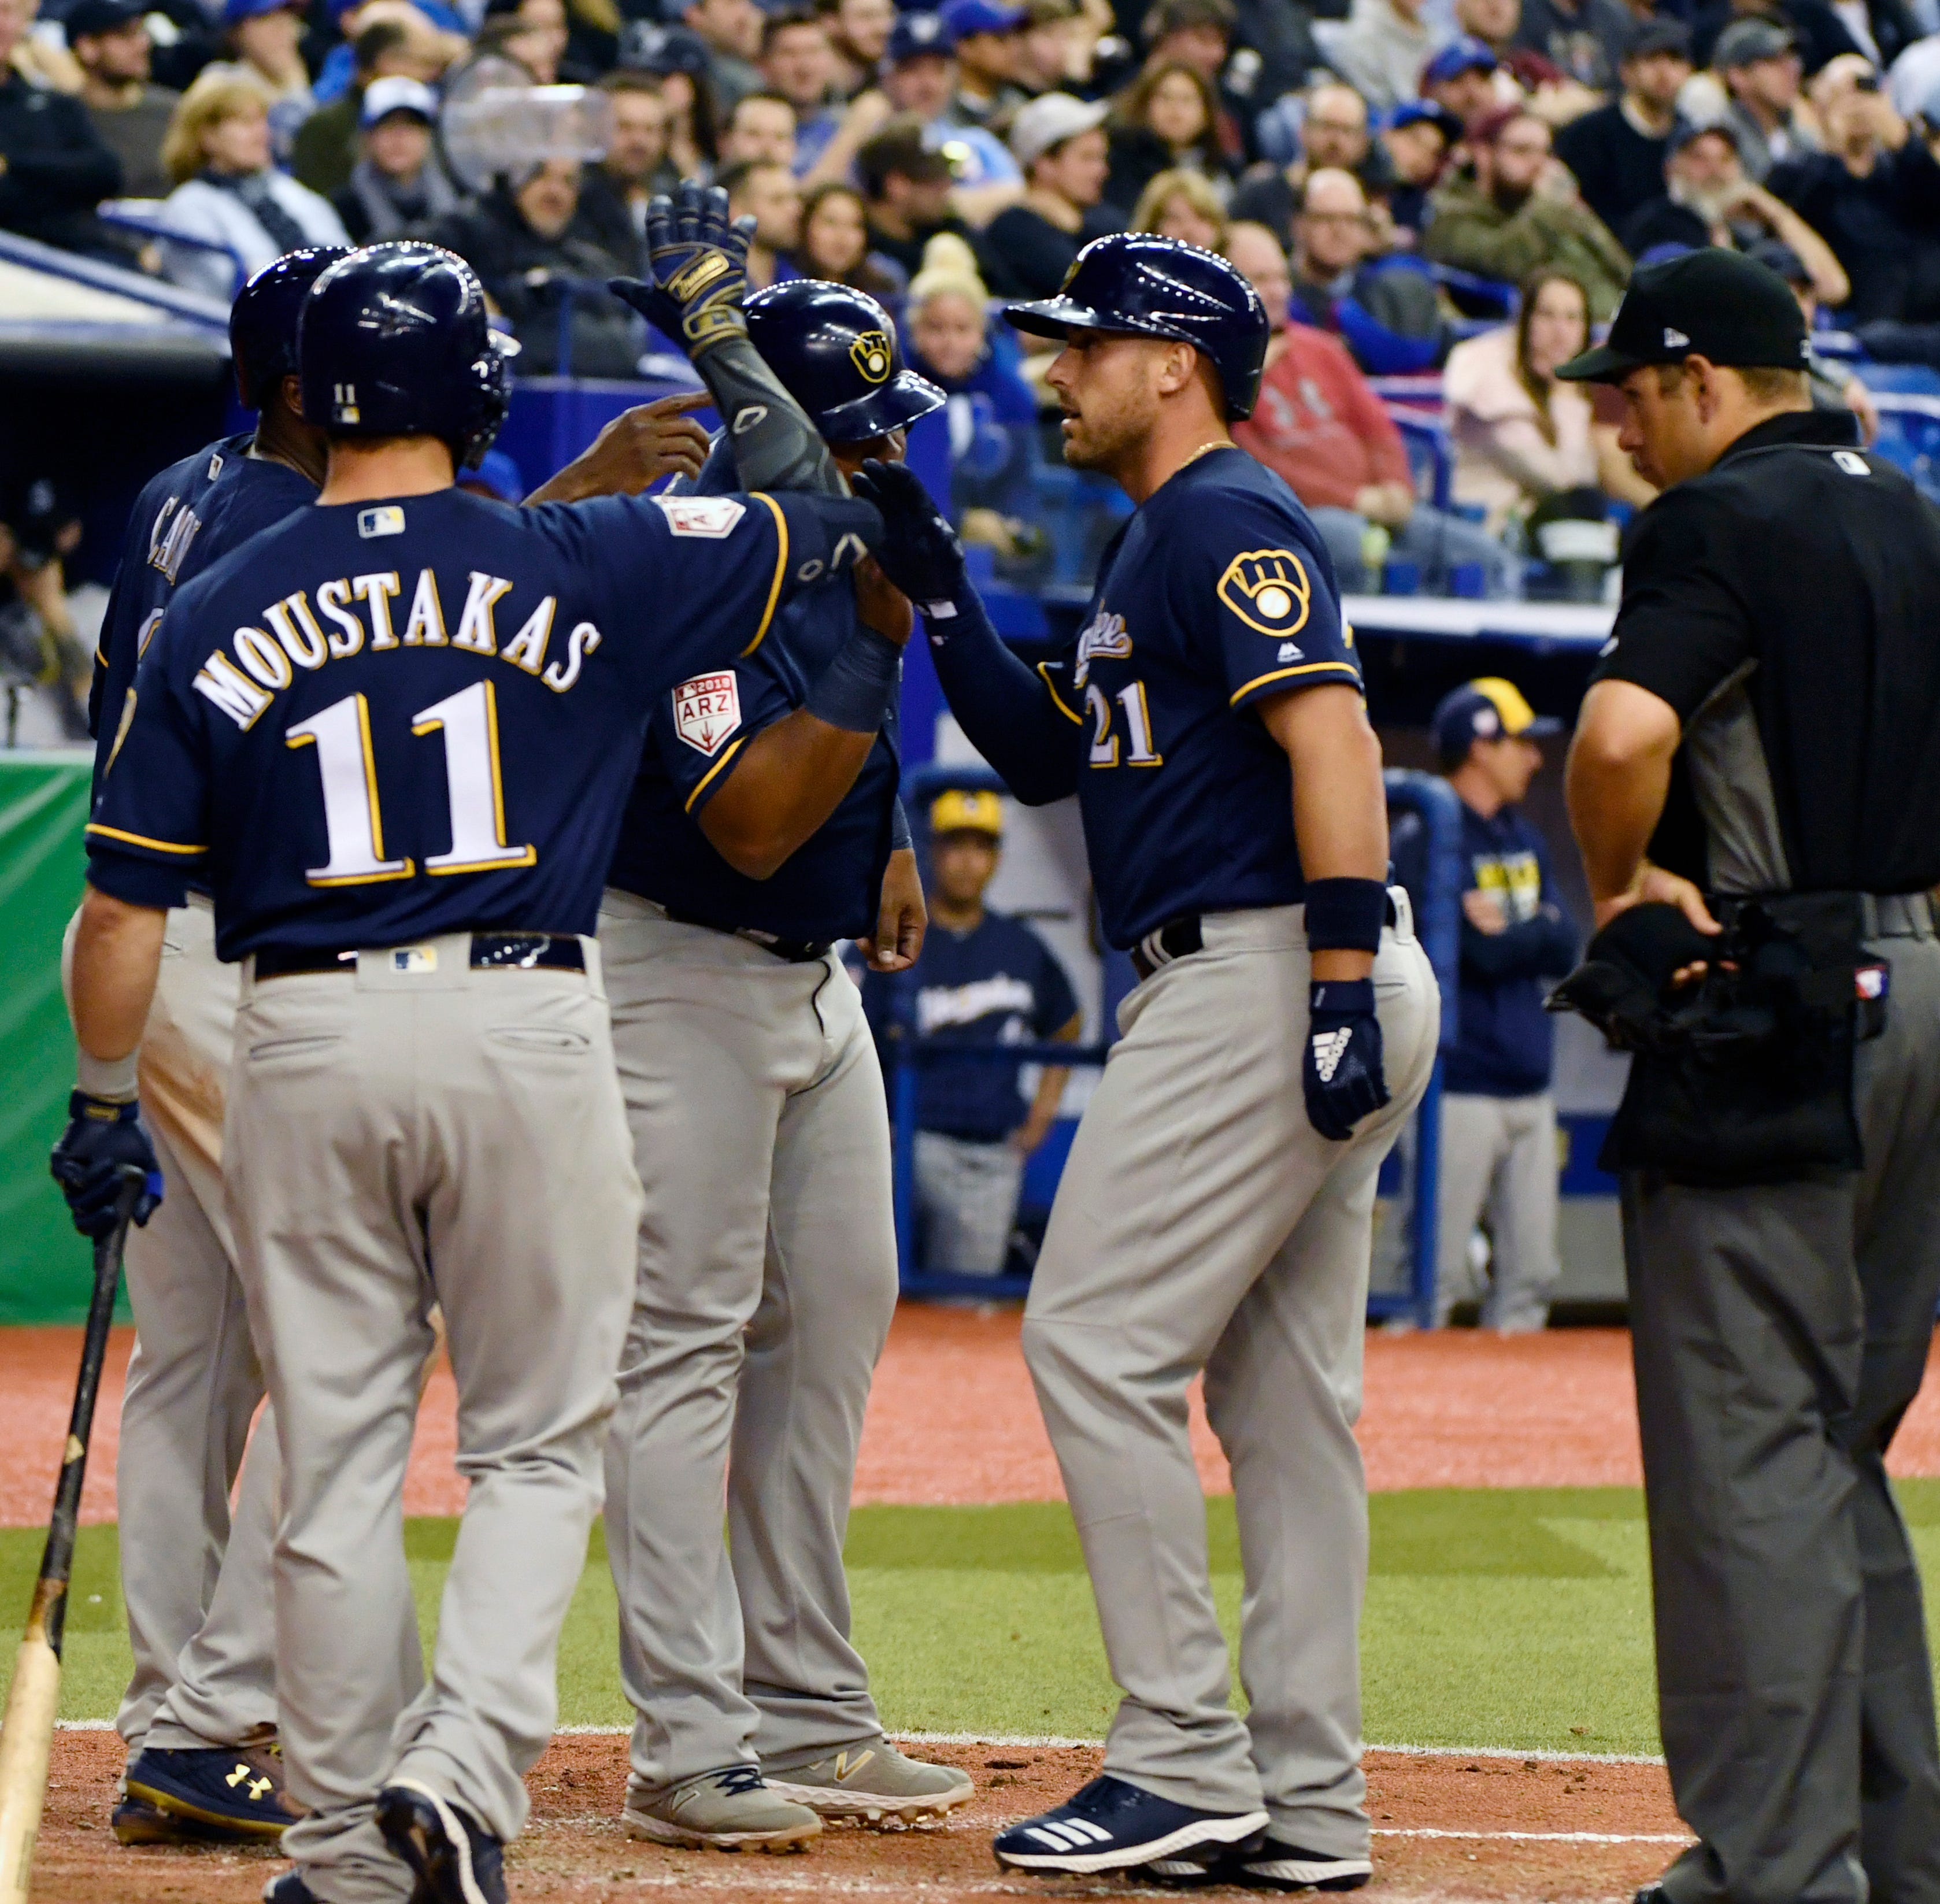 Brewers 10, Blue Jays 5: Shaw, Grandal slug home runs as Brewers break out the big bats